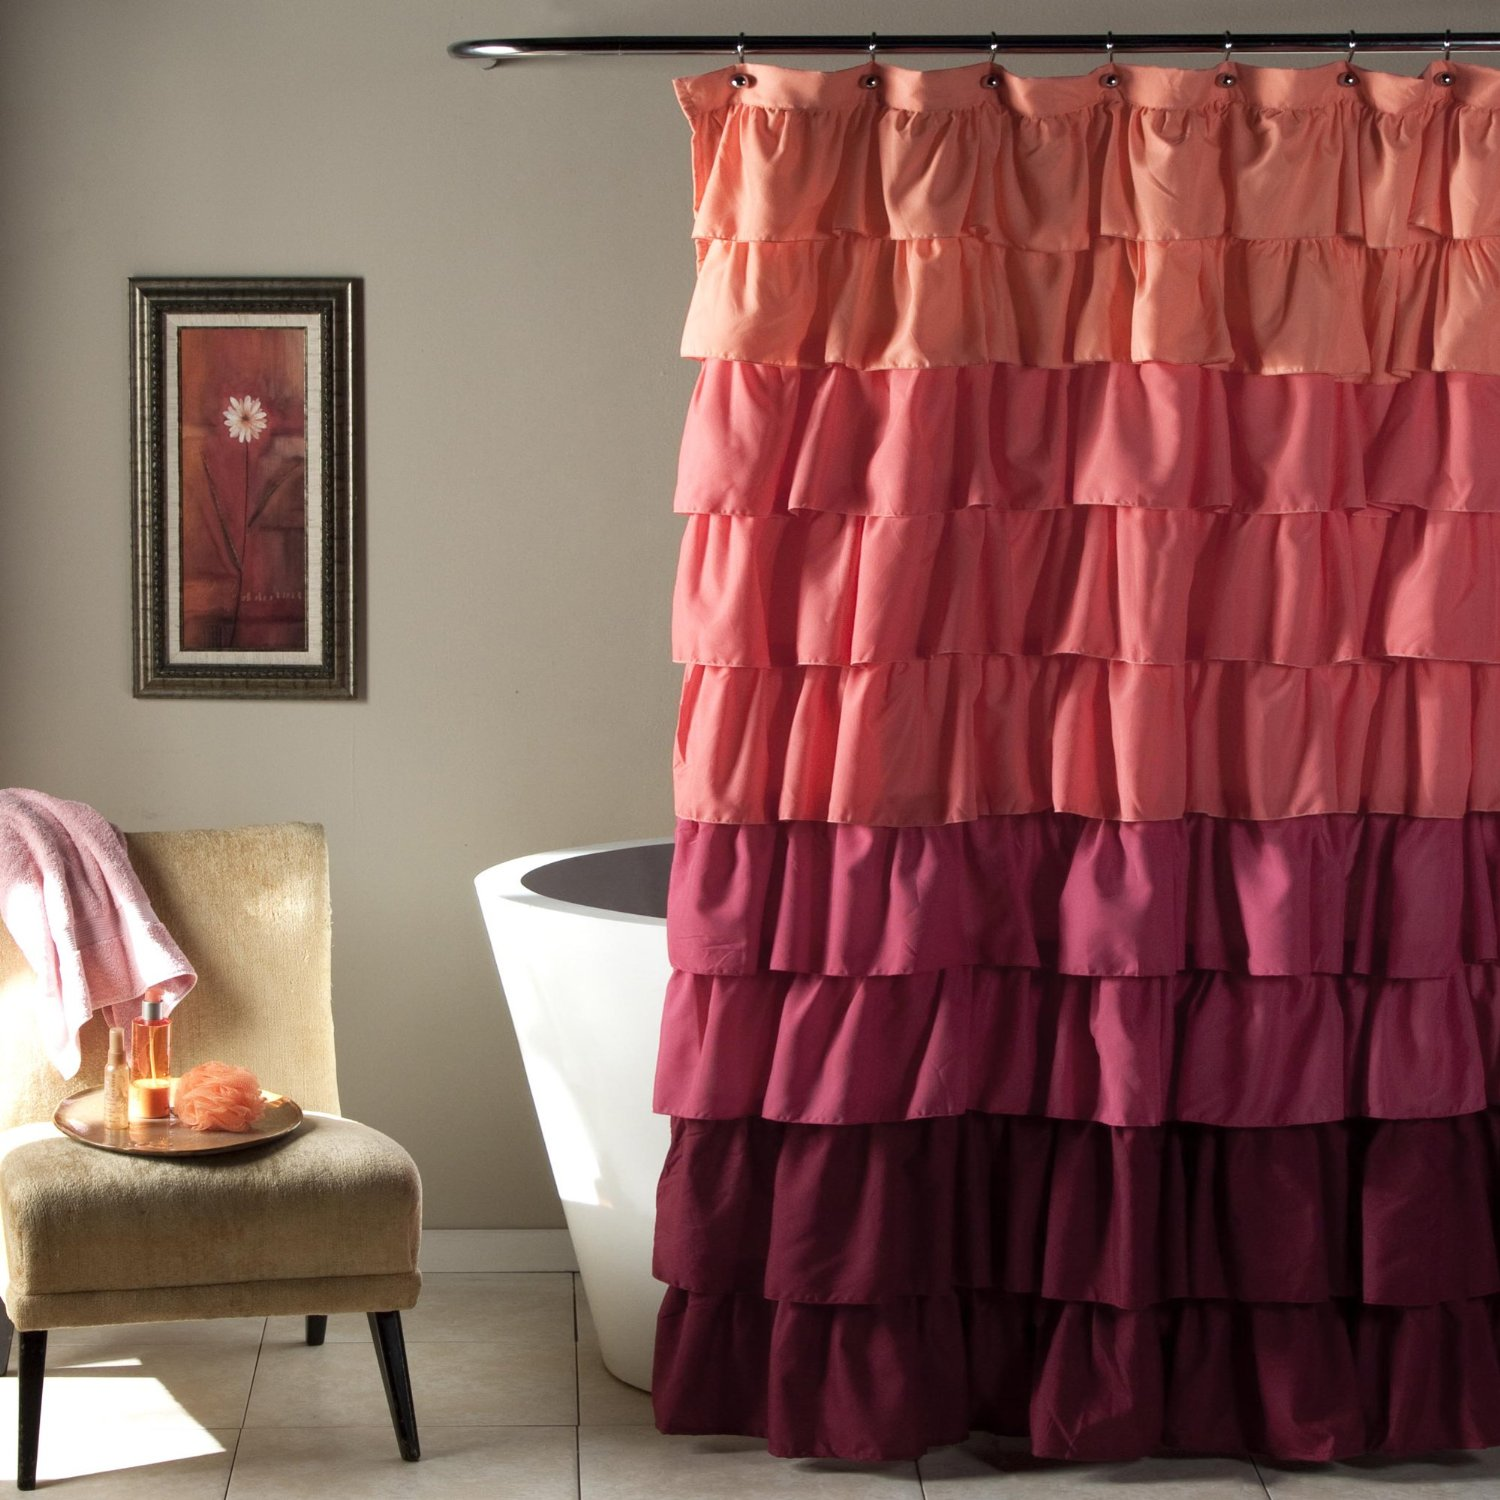 Curtain Deals Cheap Plum Shower Curtain Find Plum Shower Curtain Deals